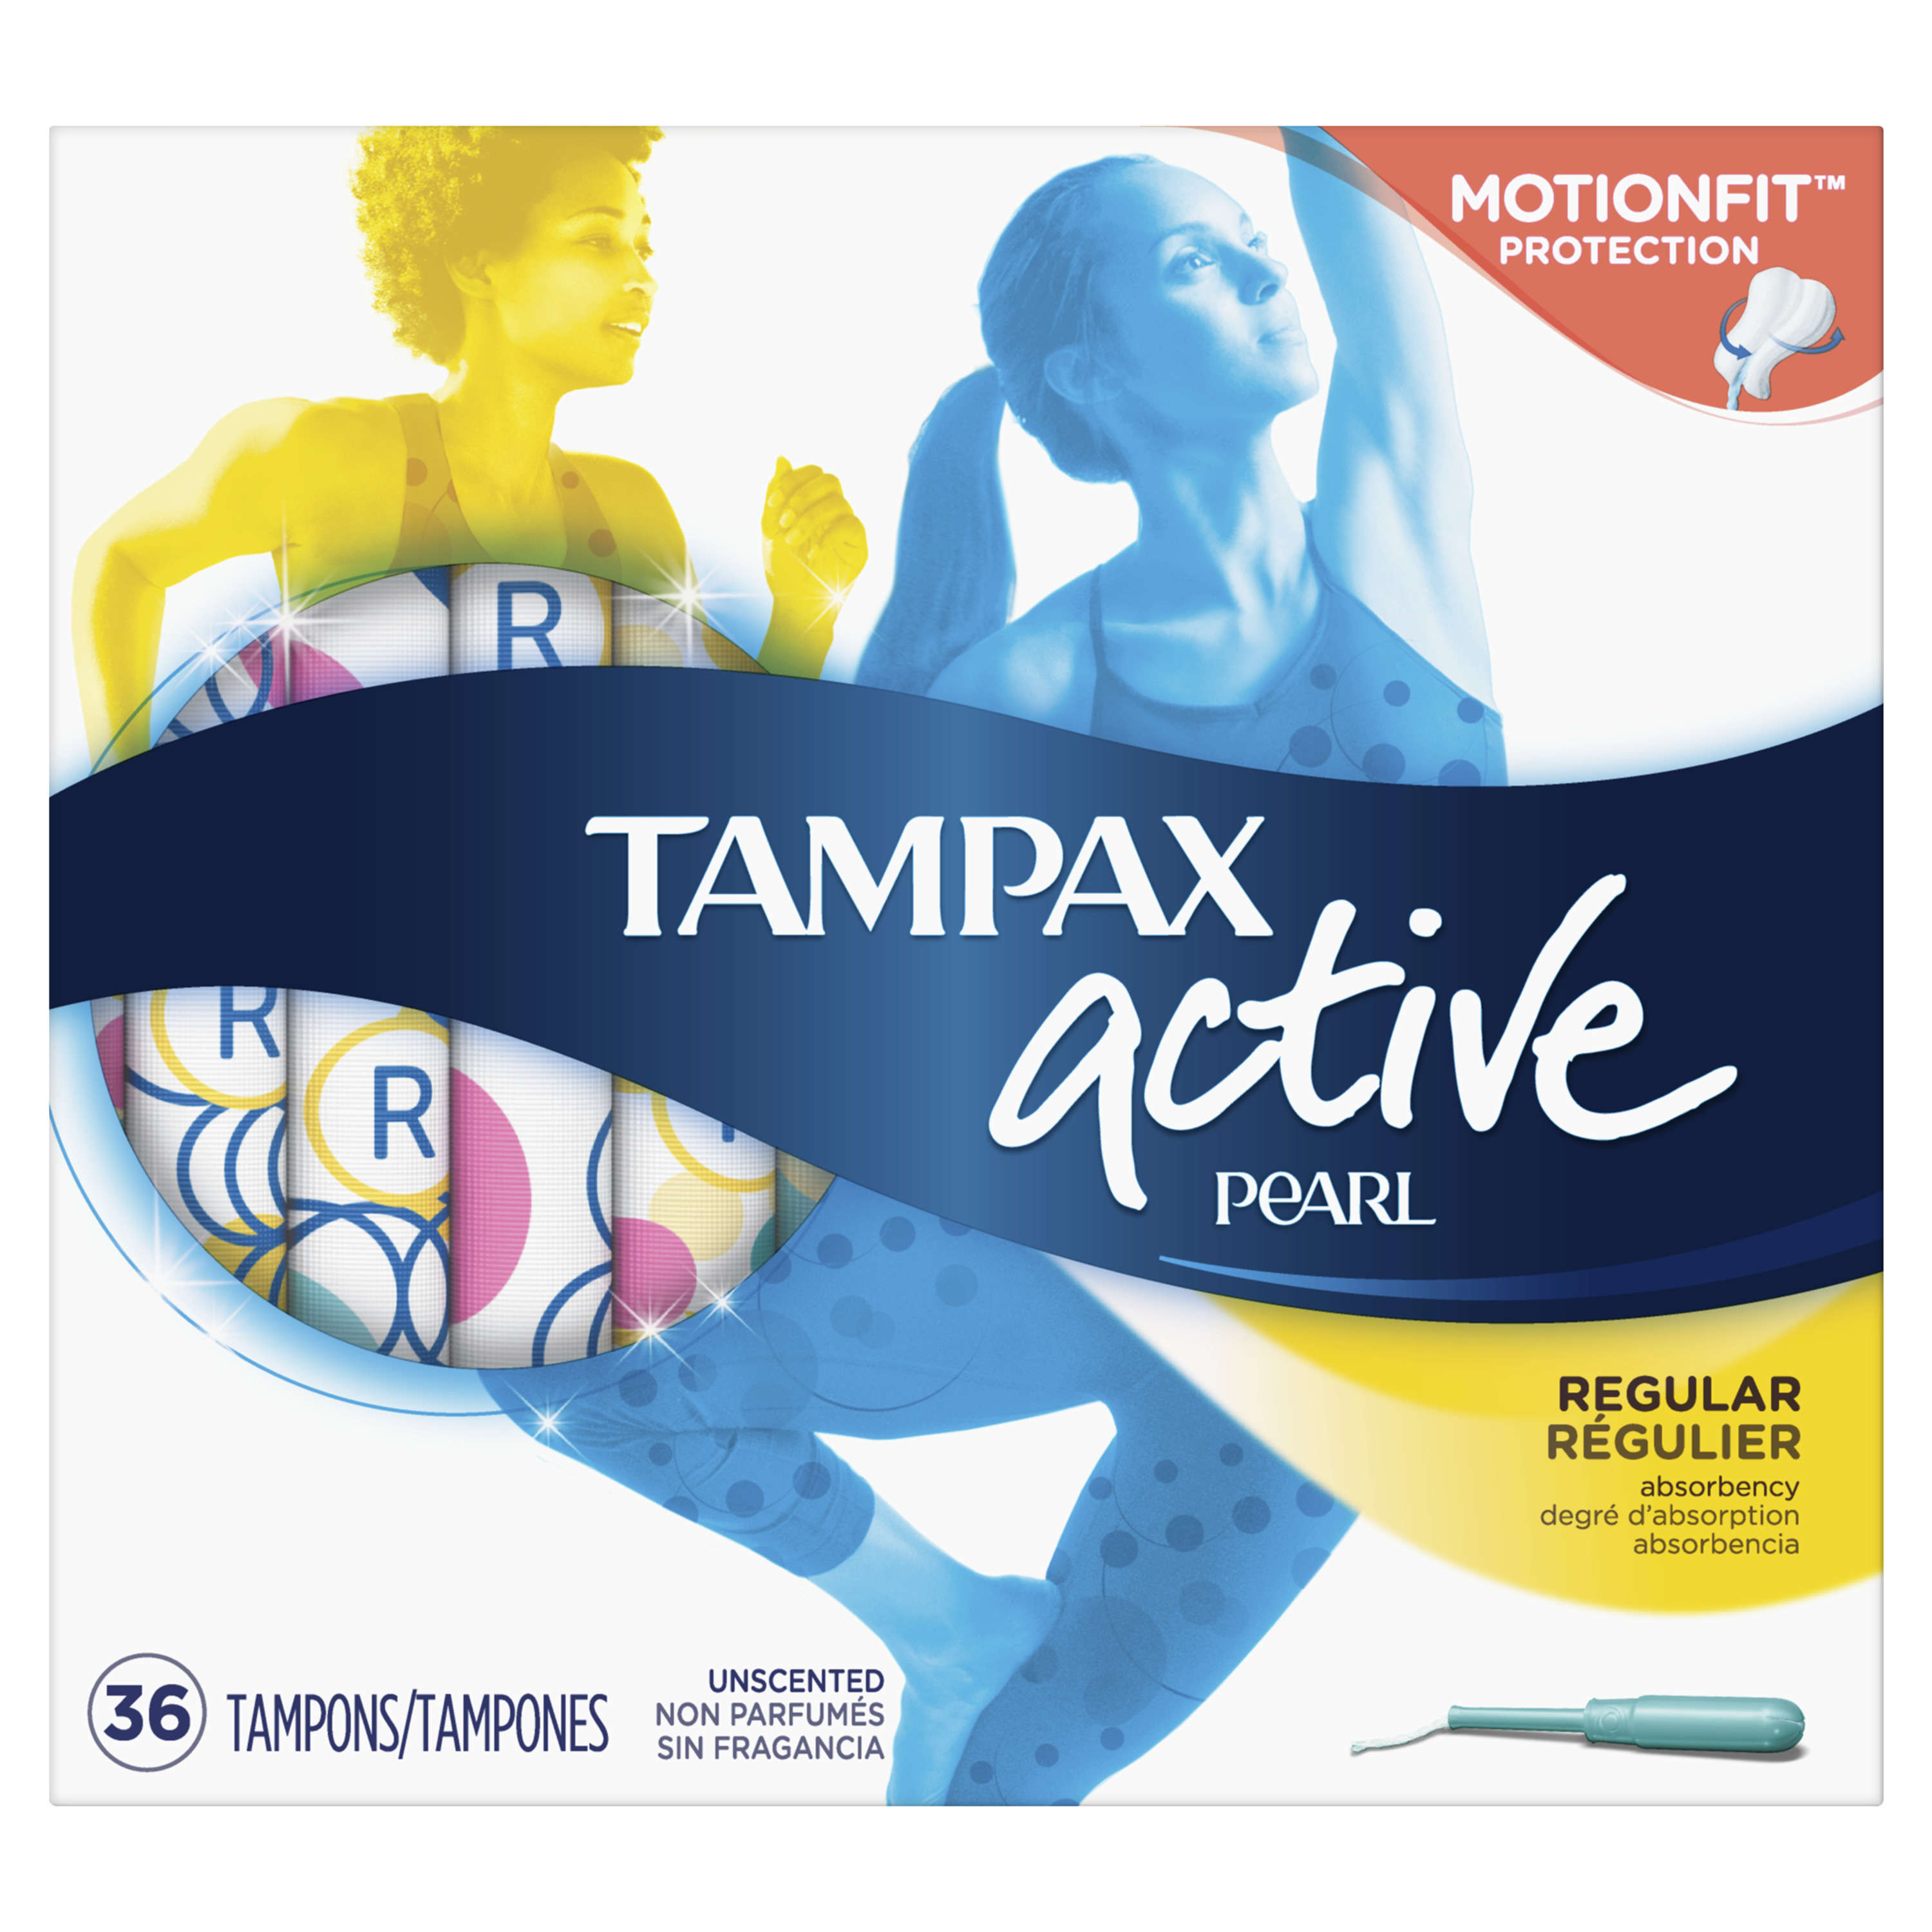 Tampax Pearl Active Plastic Tampons, Regular Absorbency, Unscented (Choose Your Count)